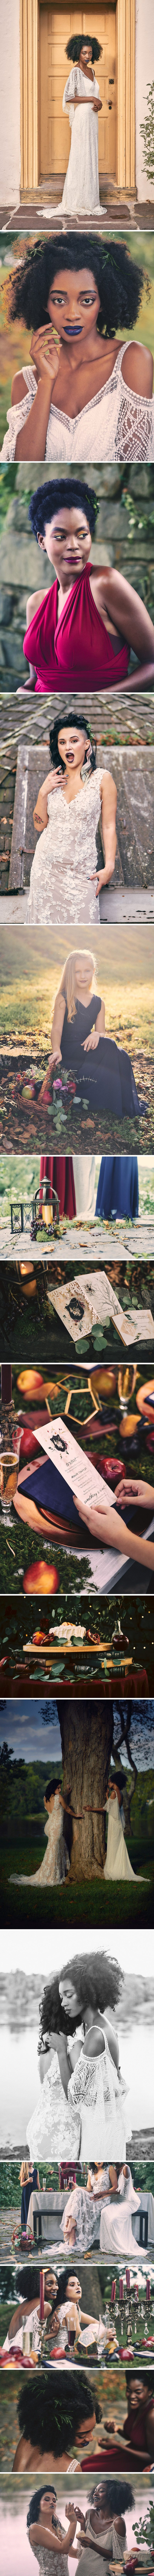 Styled Wedding by Events by Merida with photography by That Werks (Christopher John Sztybel)